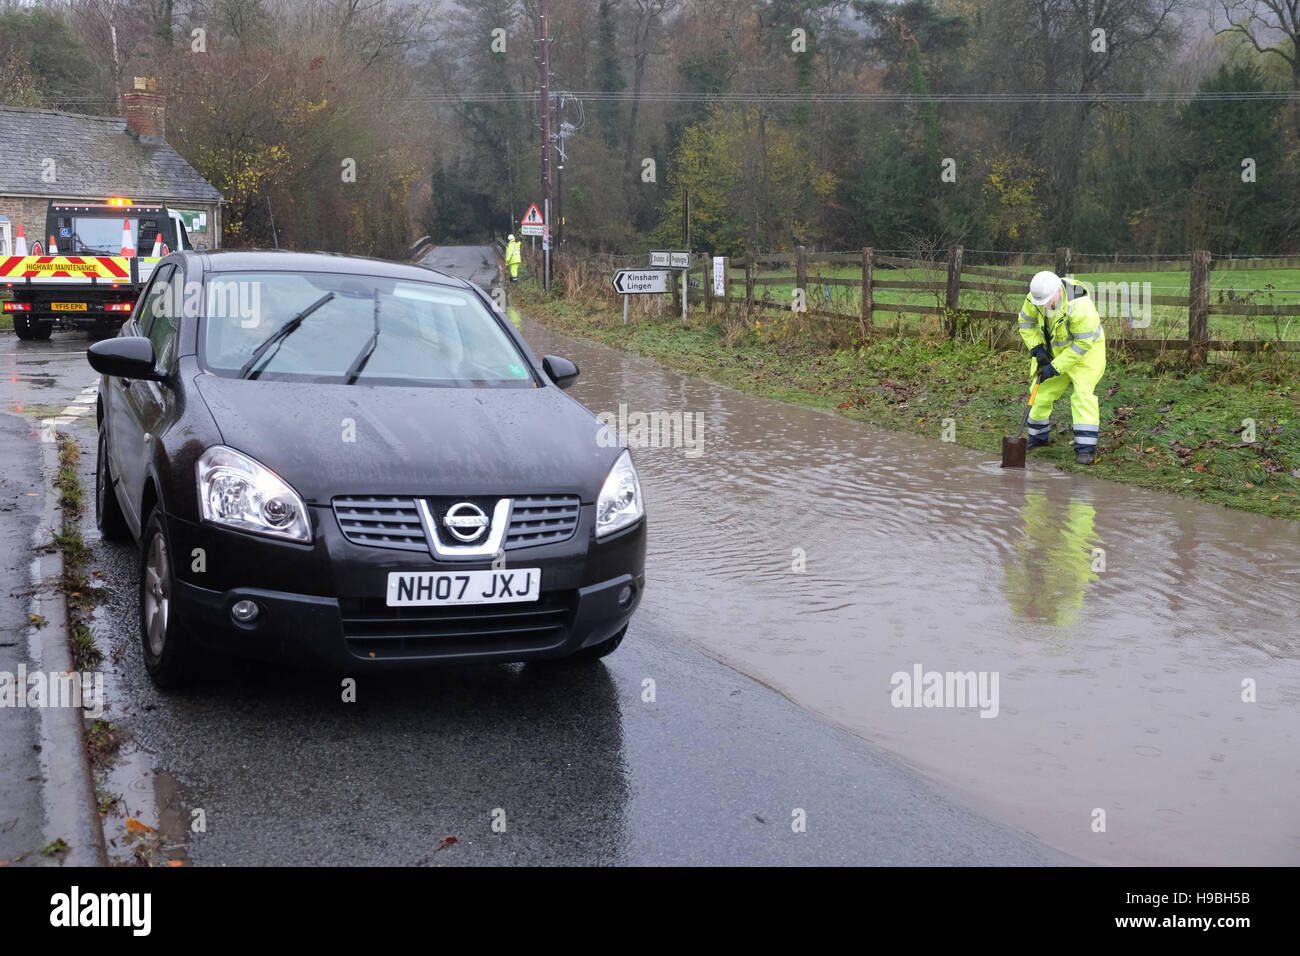 Combe, Herefordshire, UK. 21st November, 2016. Workers from Herefordshire County Council working in tricky conditions - Stock Image